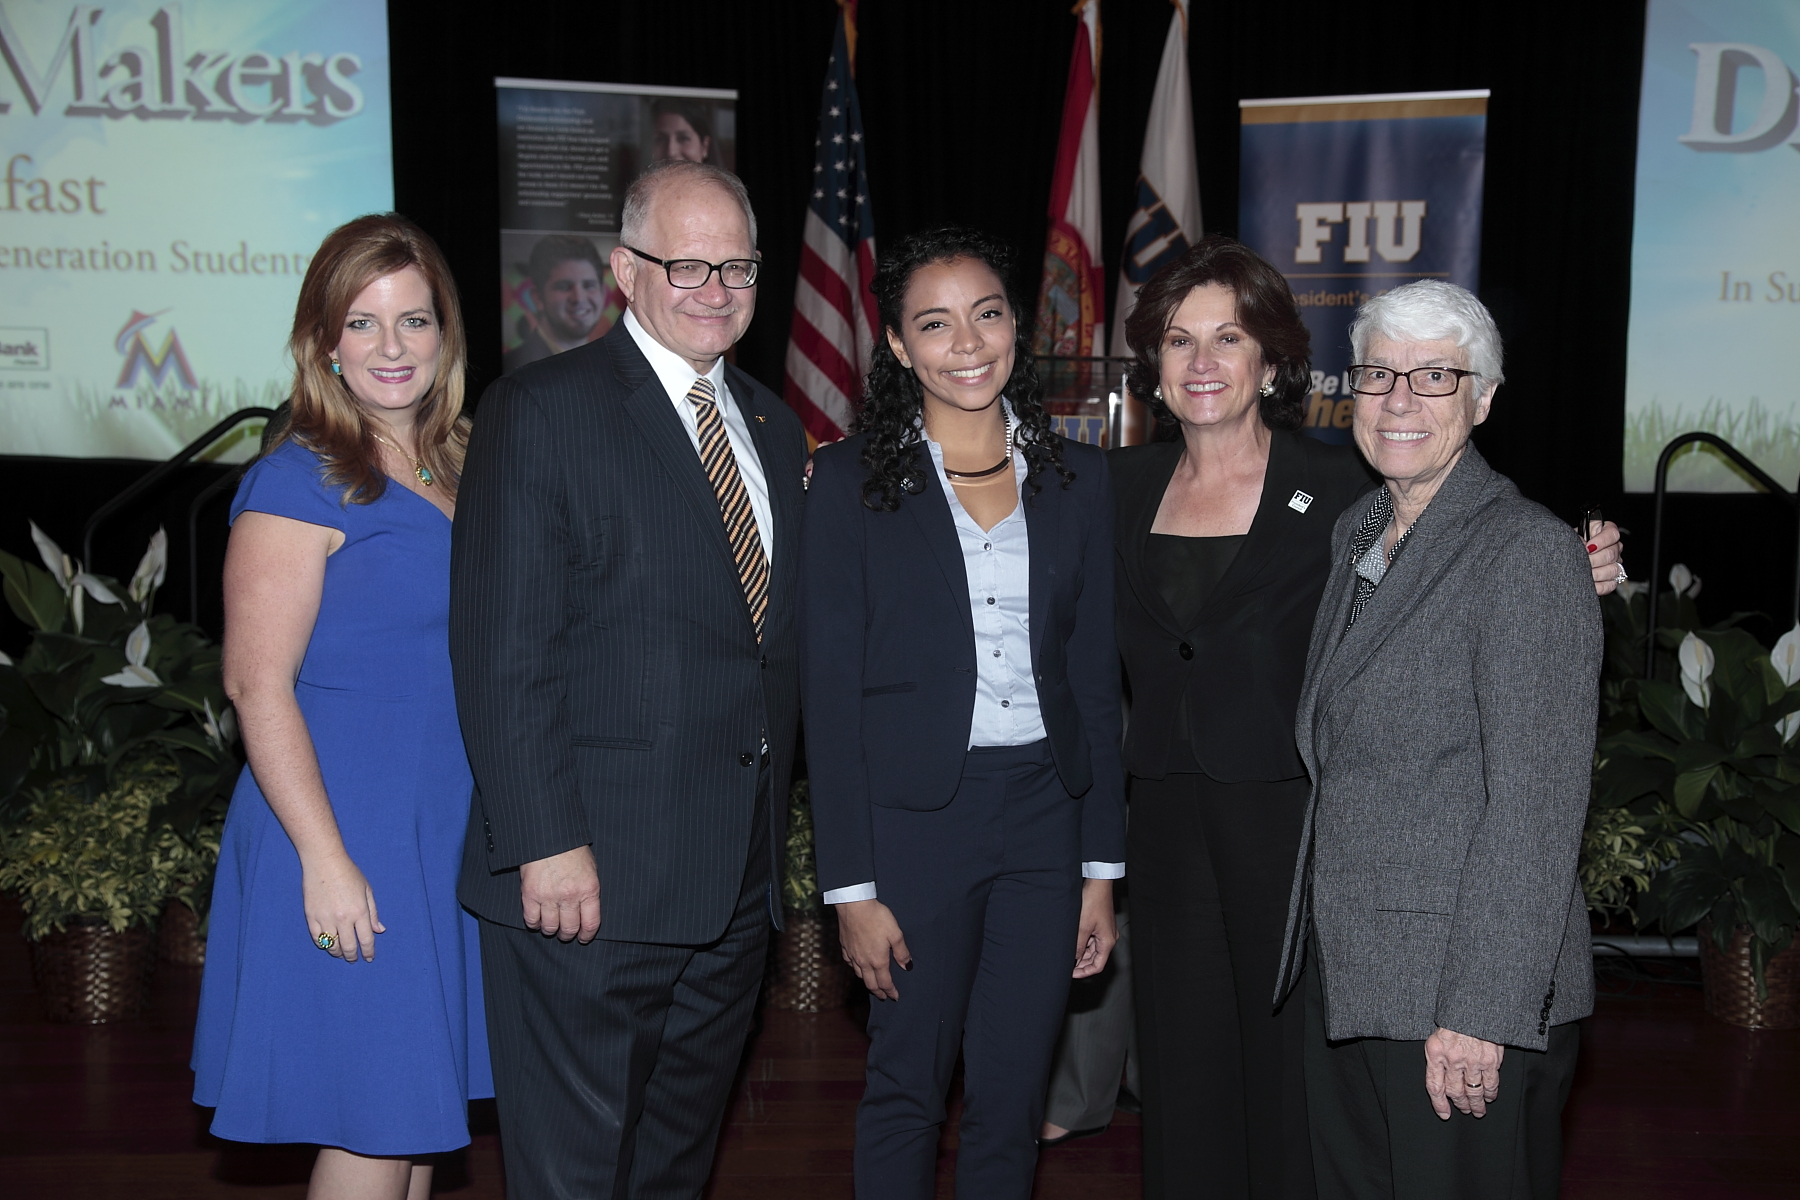 DreamMakers Breakfast raises more than $250,000 for First Gen scholarships